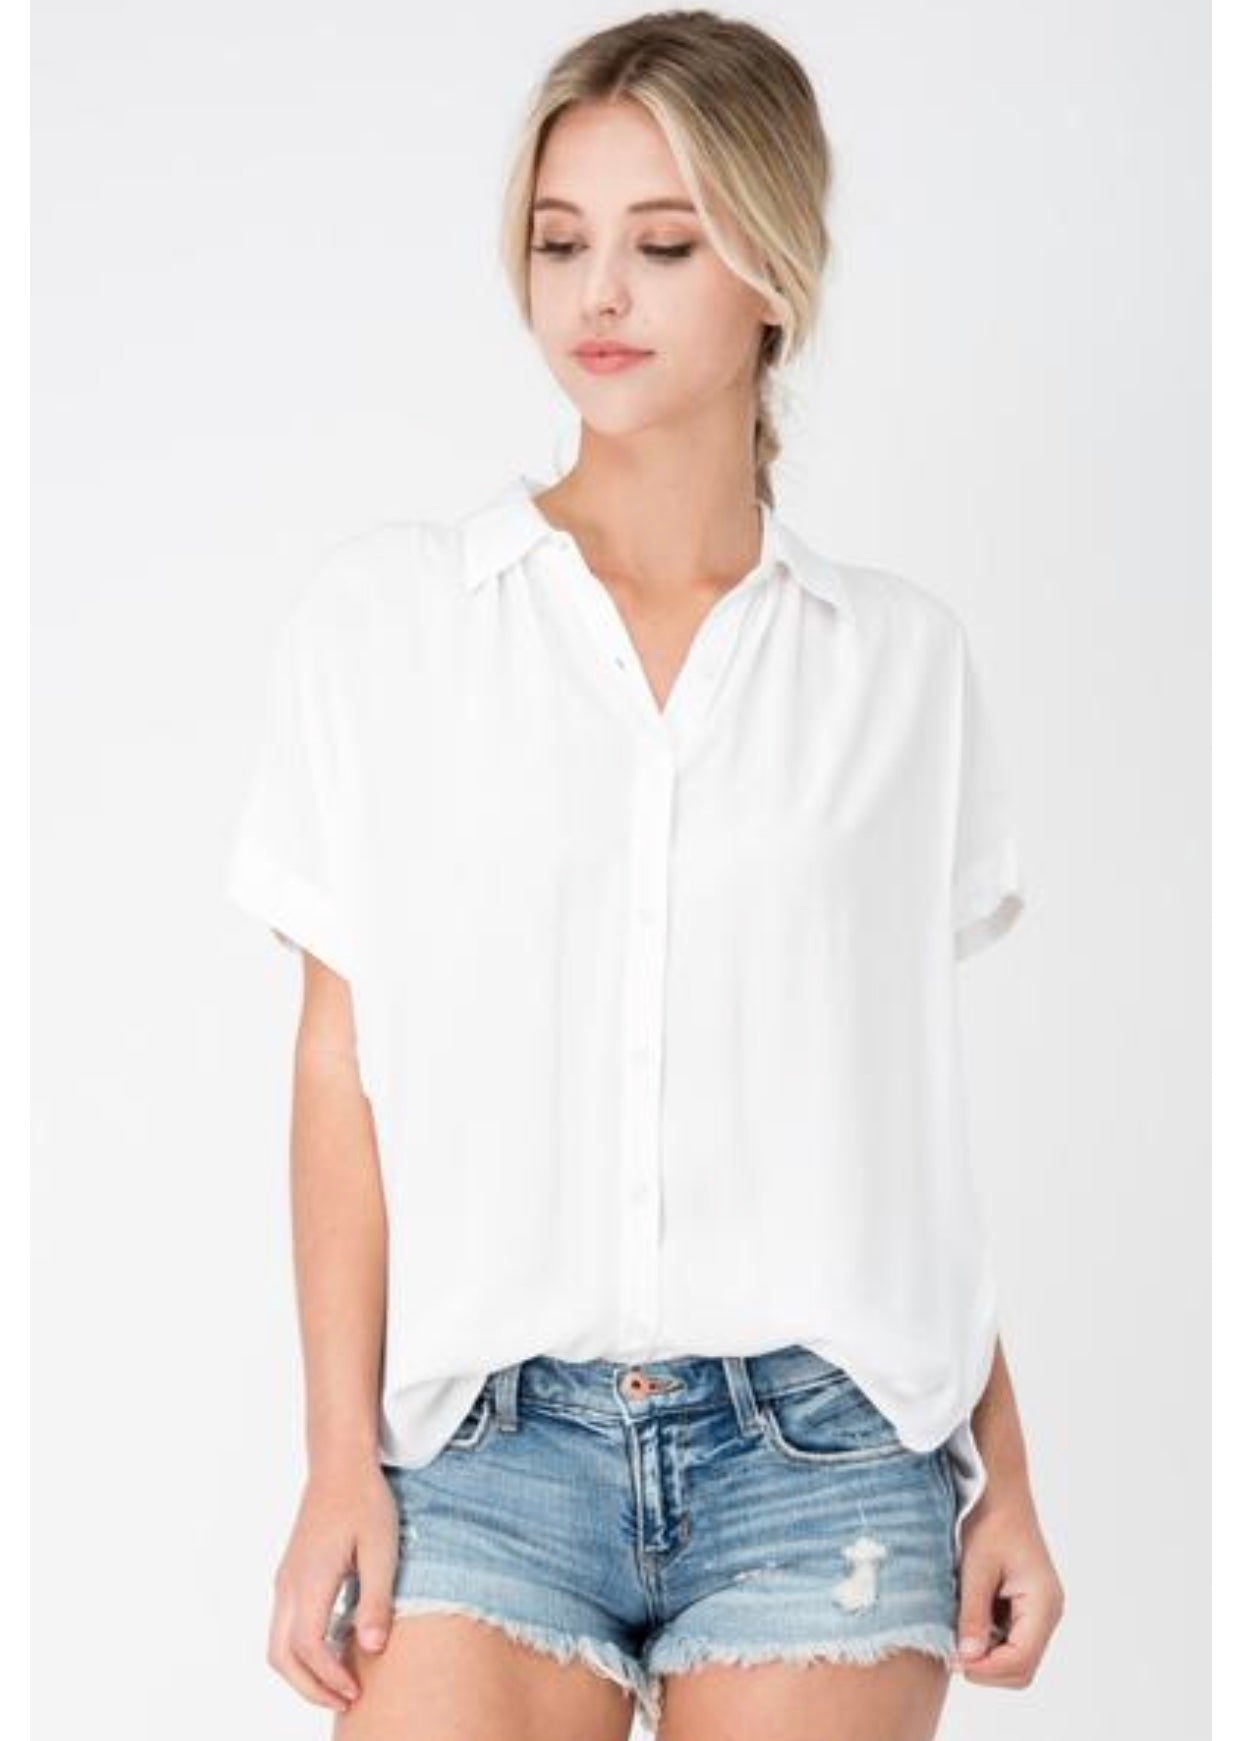 Sneak Peek White Short Sleeve Button Up With Cuffed Sleeve Detail | Cheeky Cactus